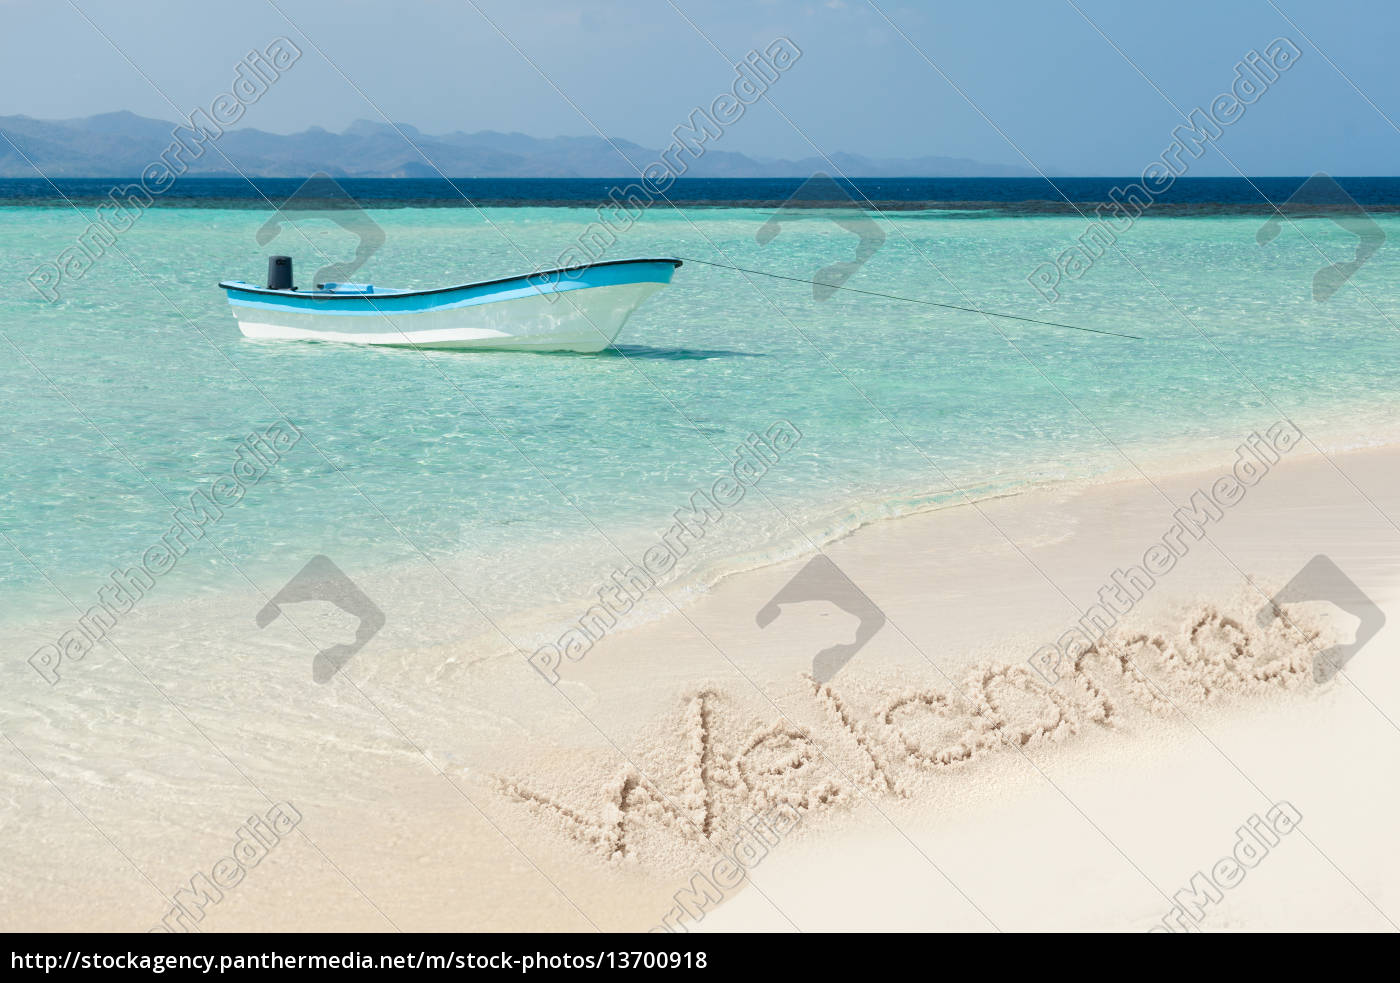 boat, moored, in, sea, at, beach - 13700918